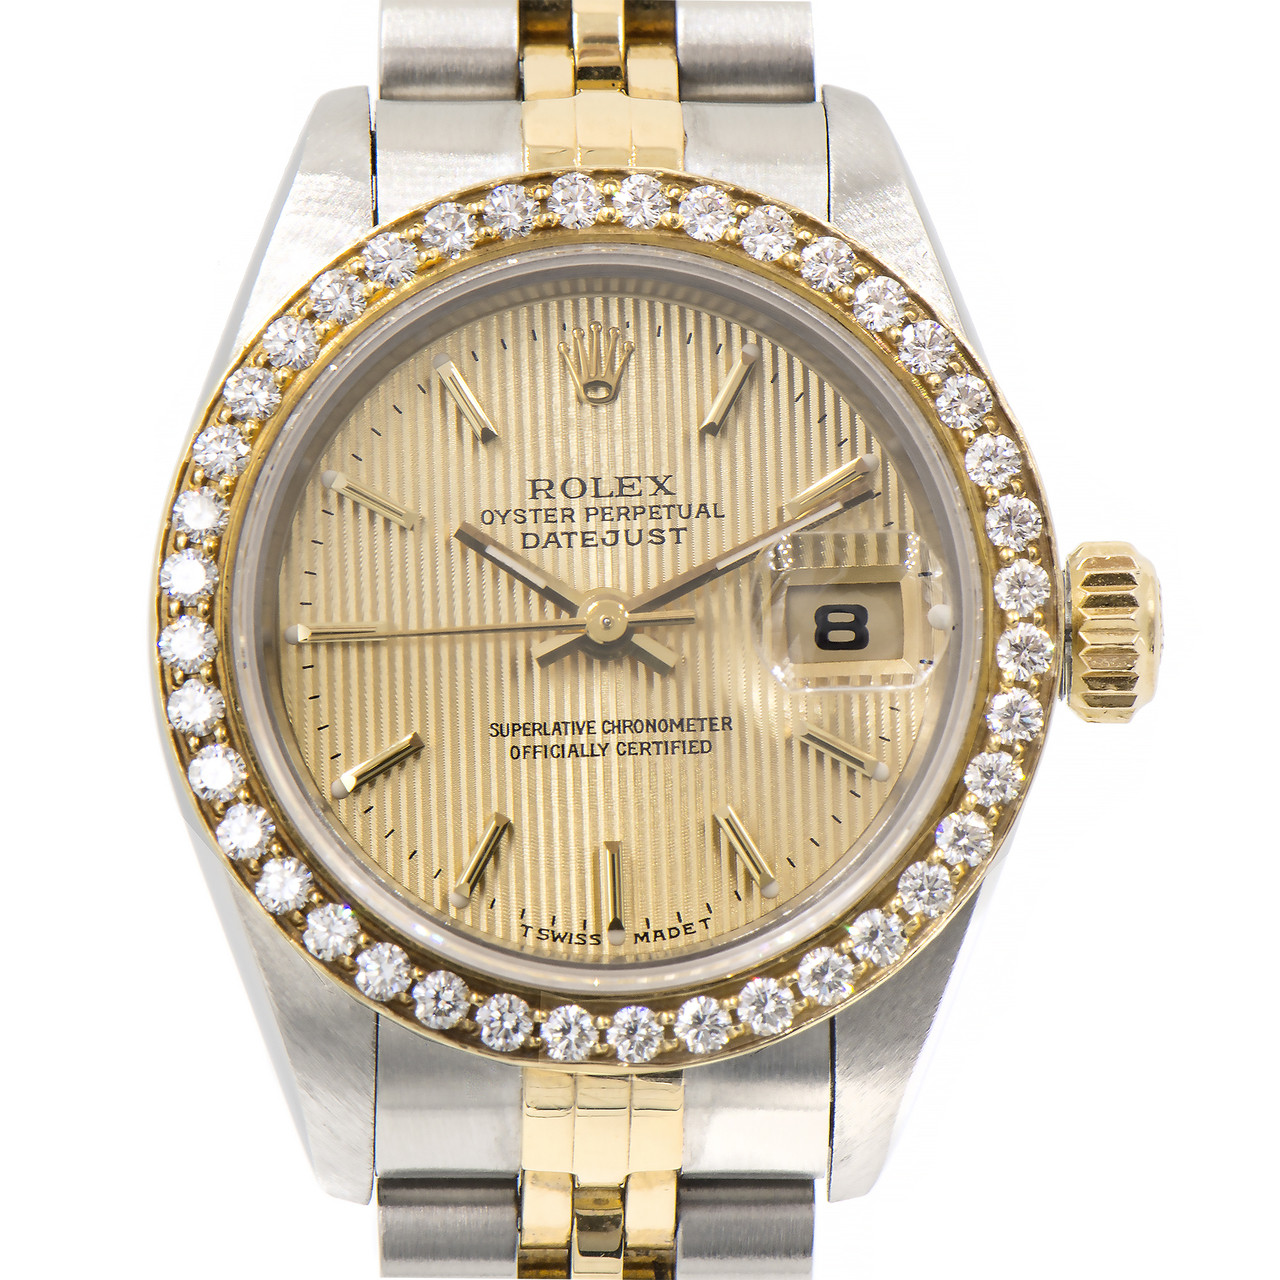 Rolex Ladies Watches Rolex Ladies Datejust Ref 69173 18k Gold Stainless Steel Diamond 26mm Watch